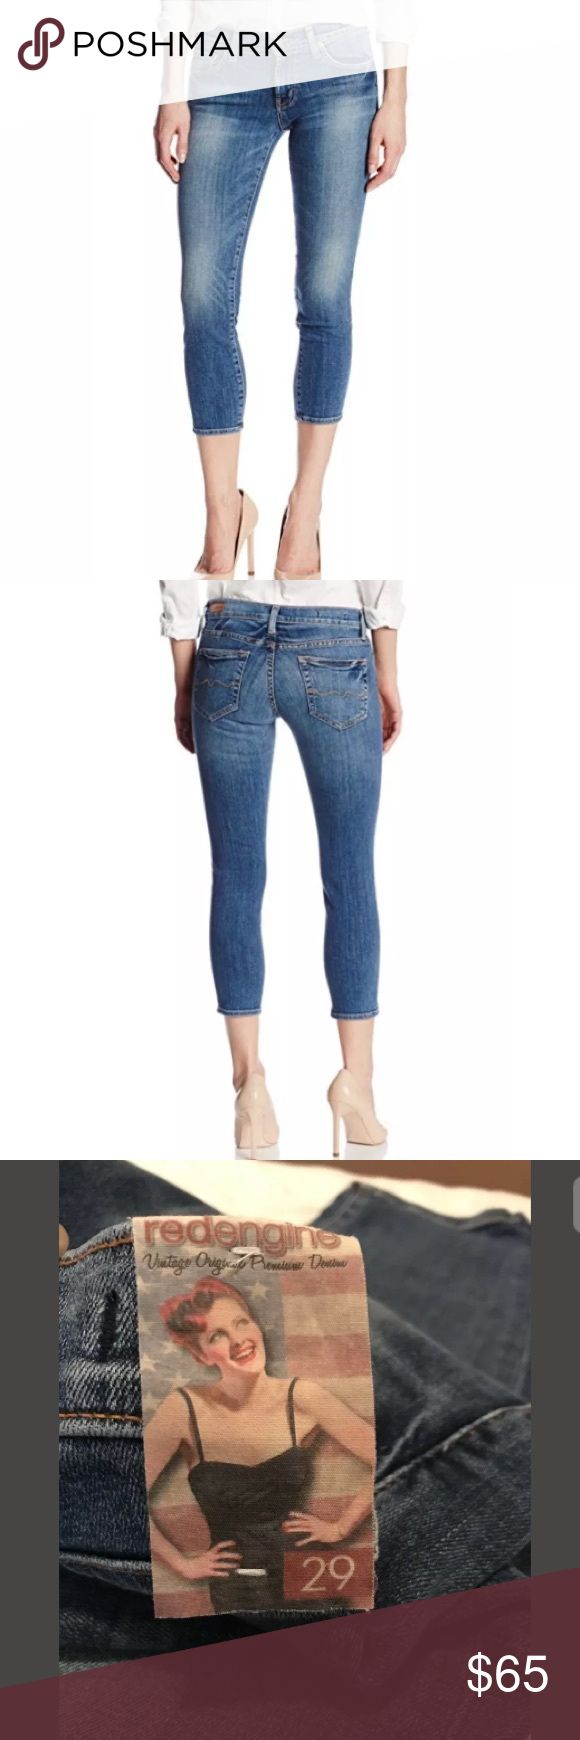 """NWT Red Engine Red Hot Skinny Crop Riviera Wash 29 Red Engine """"REDHOT Skinny Crop"""" Jeans NWT  Wash: Riviera / light-medium wash   Sz 29  Waist (flat): 15"""" Inseam: 25"""" Red Engine Jeans Ankle & Cropped"""